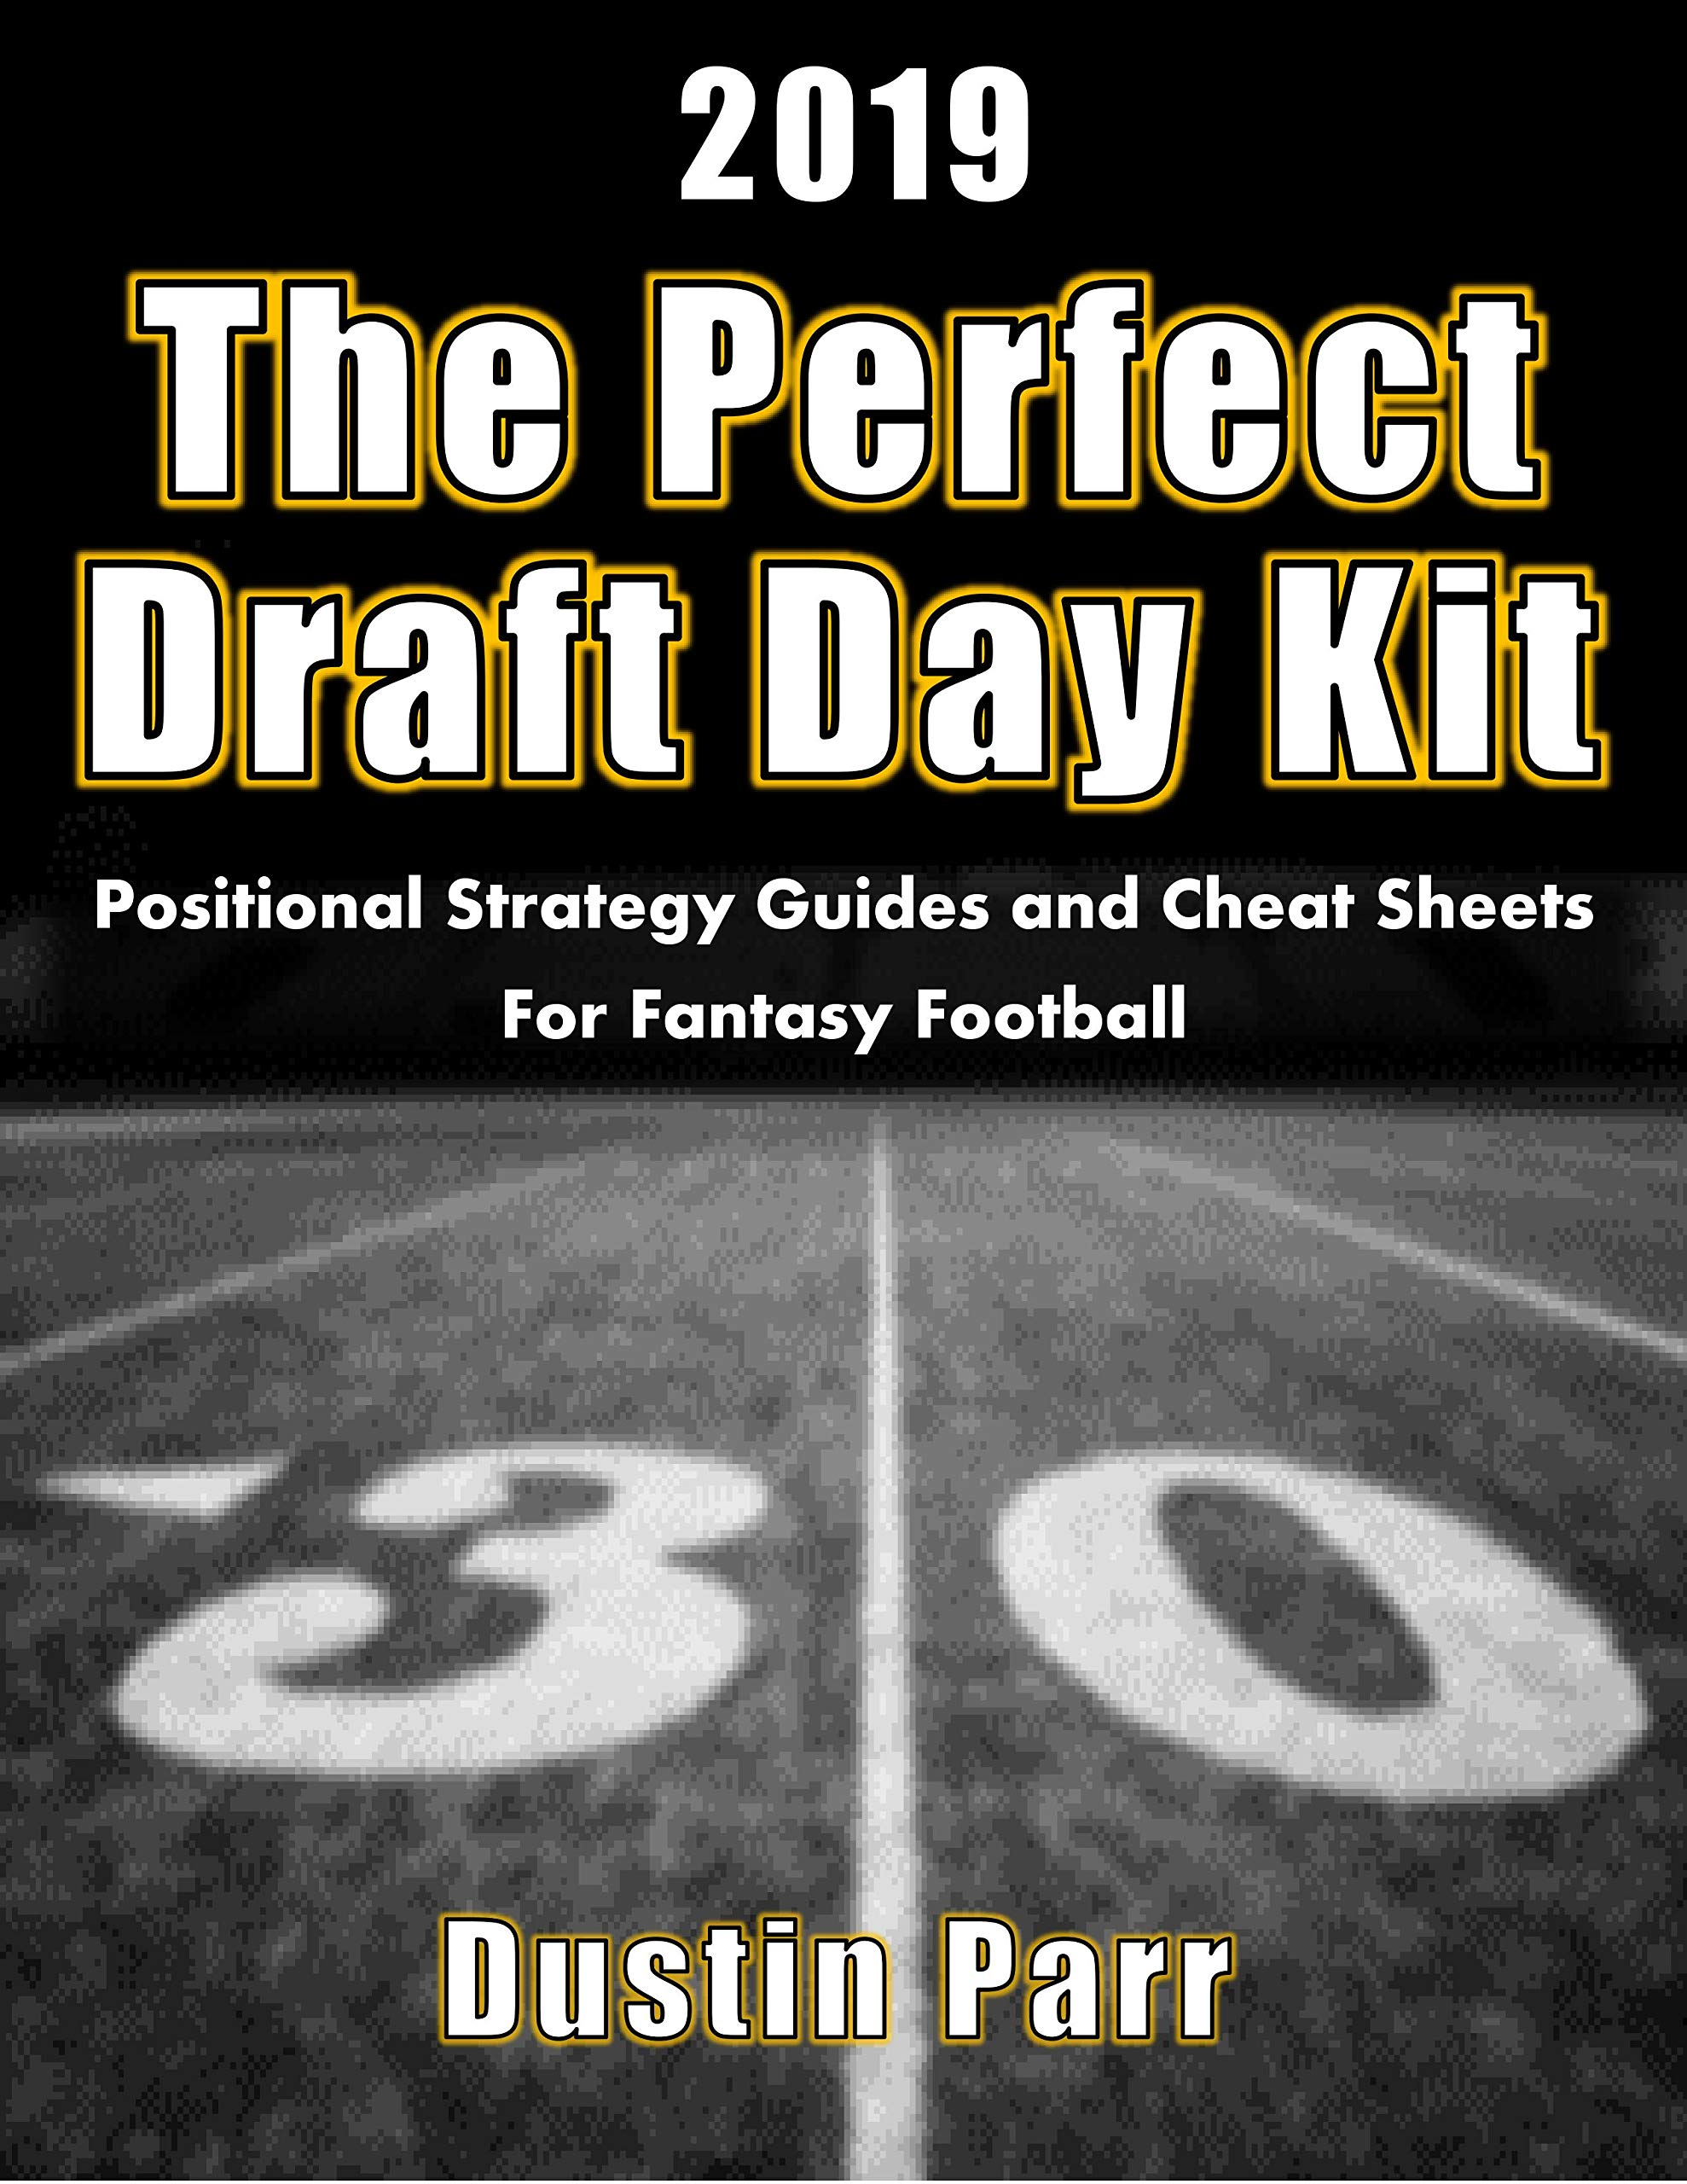 Perfect Draft Day Kit 2019 ebook